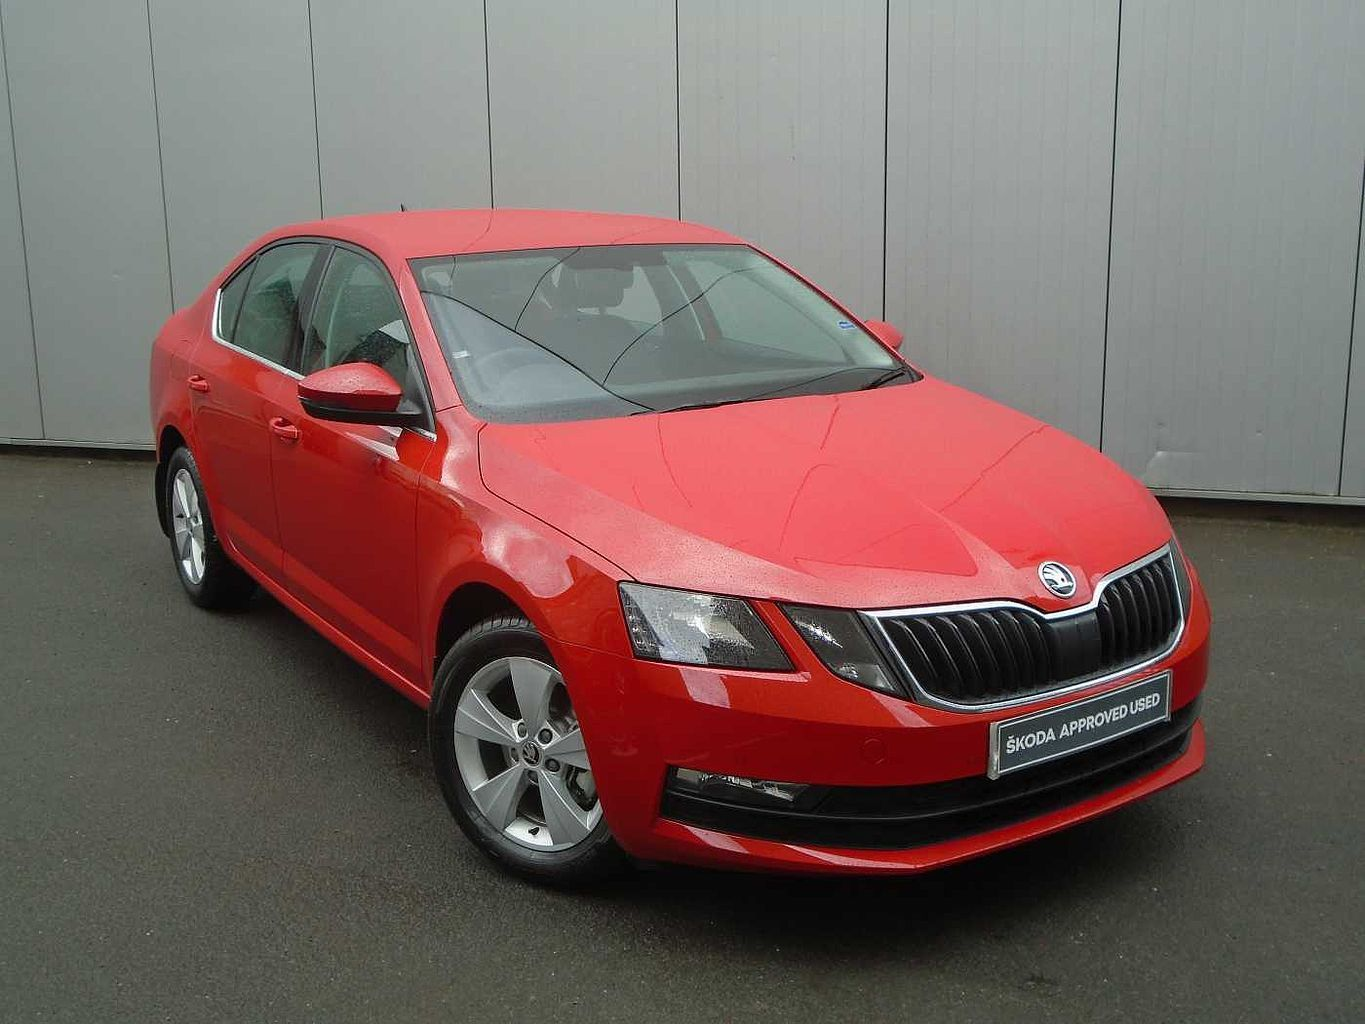 ŠKODA Octavia Hatch (2017) 1.0 TSI SE Technology 115PS